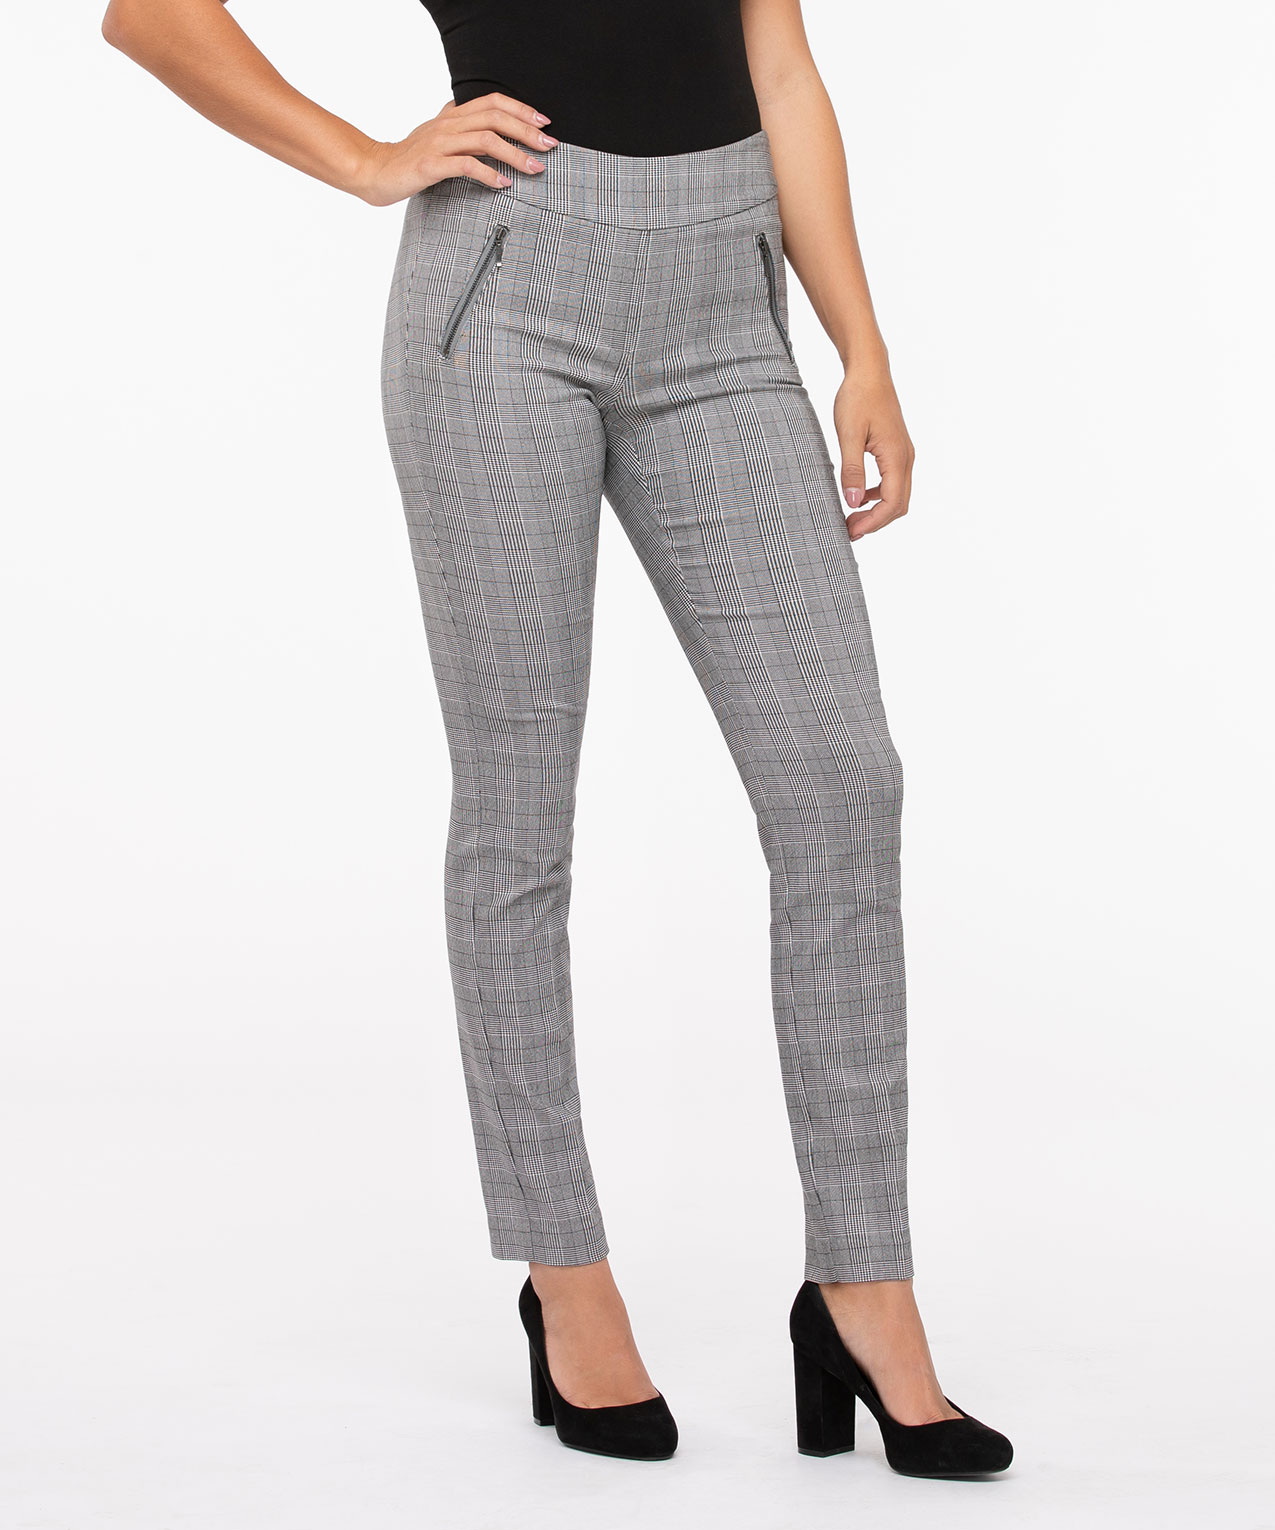 Plaid Jacquard Slim Leg - Long/Short, Black/Pearl, hi-res